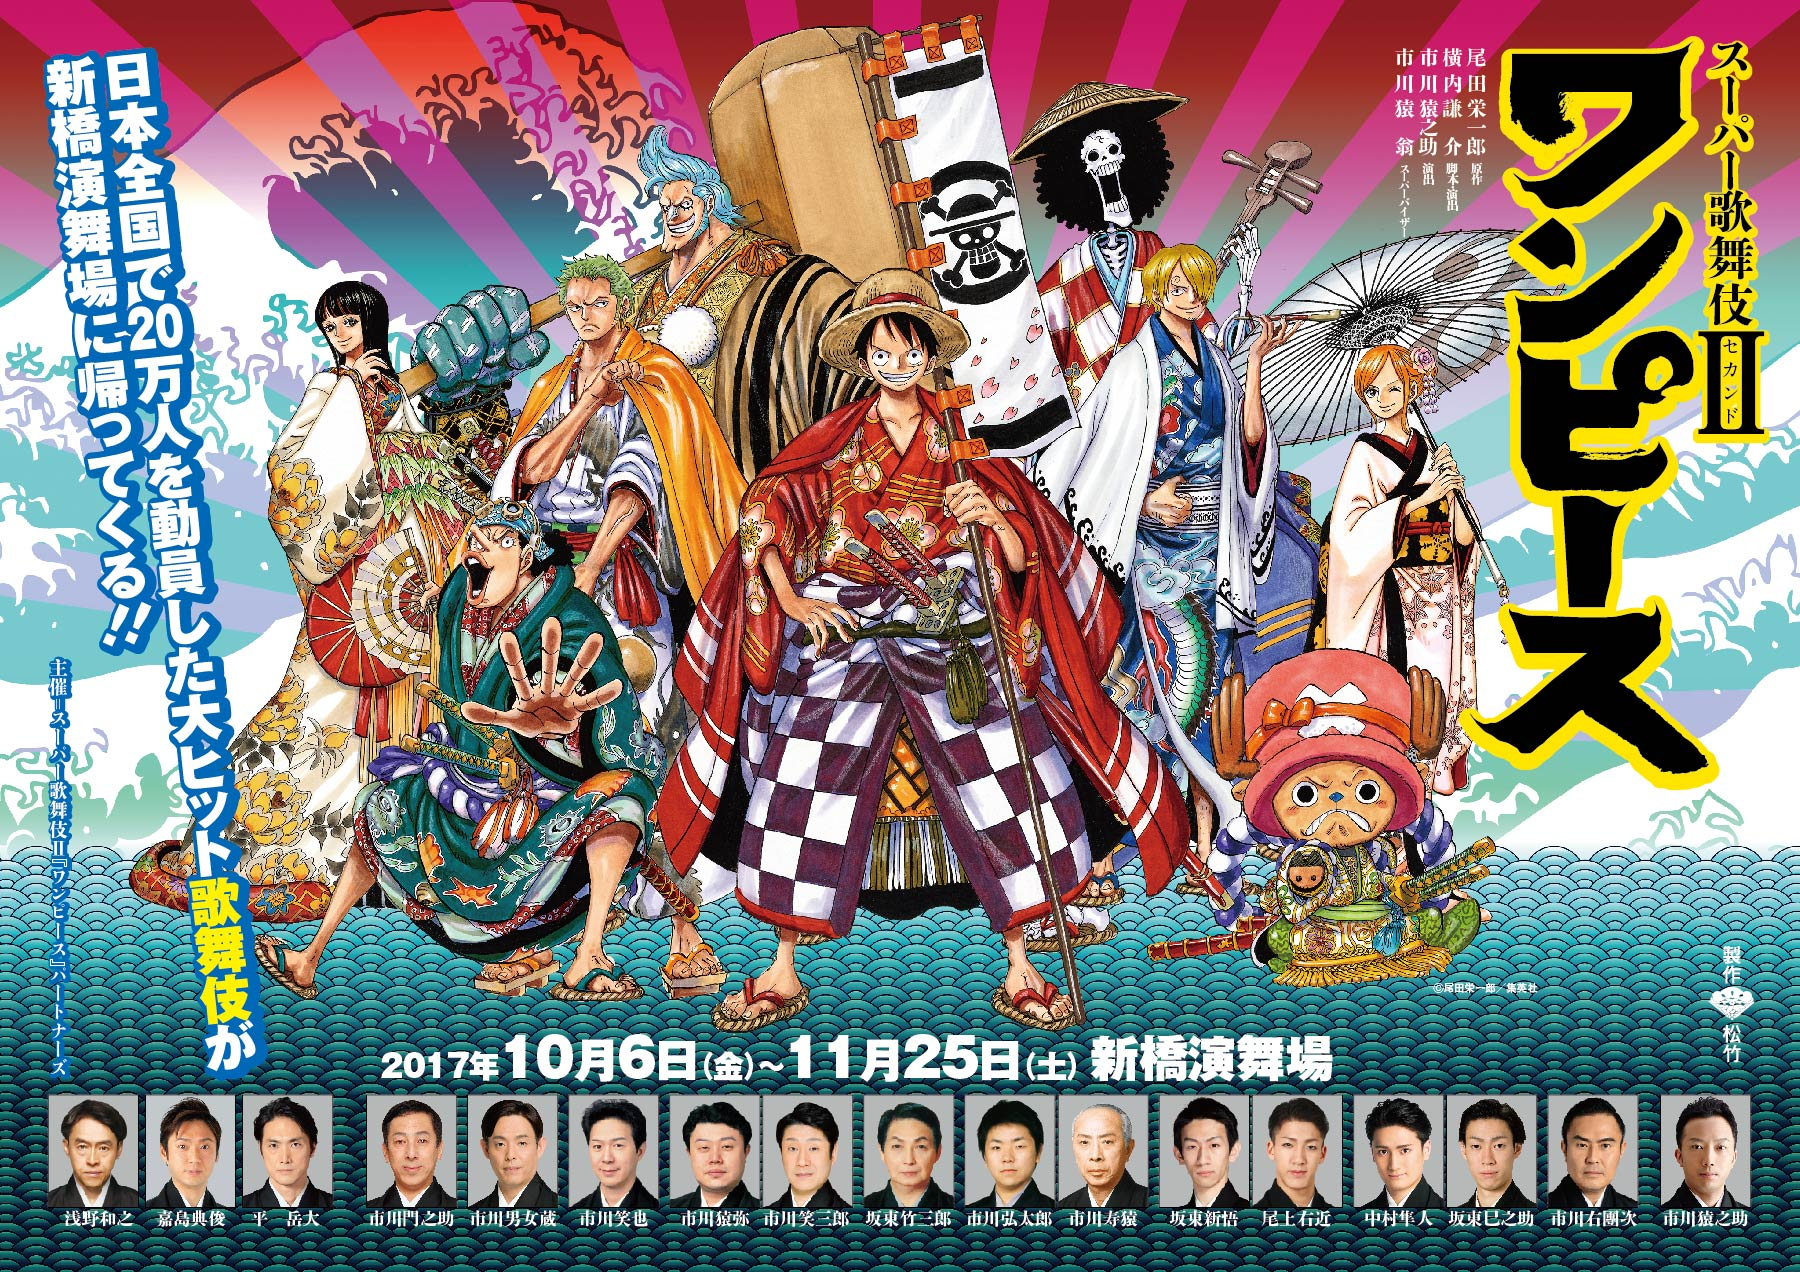 Super Kabuki II ONE PIECE at the Shinbashi Enbujo Theatre